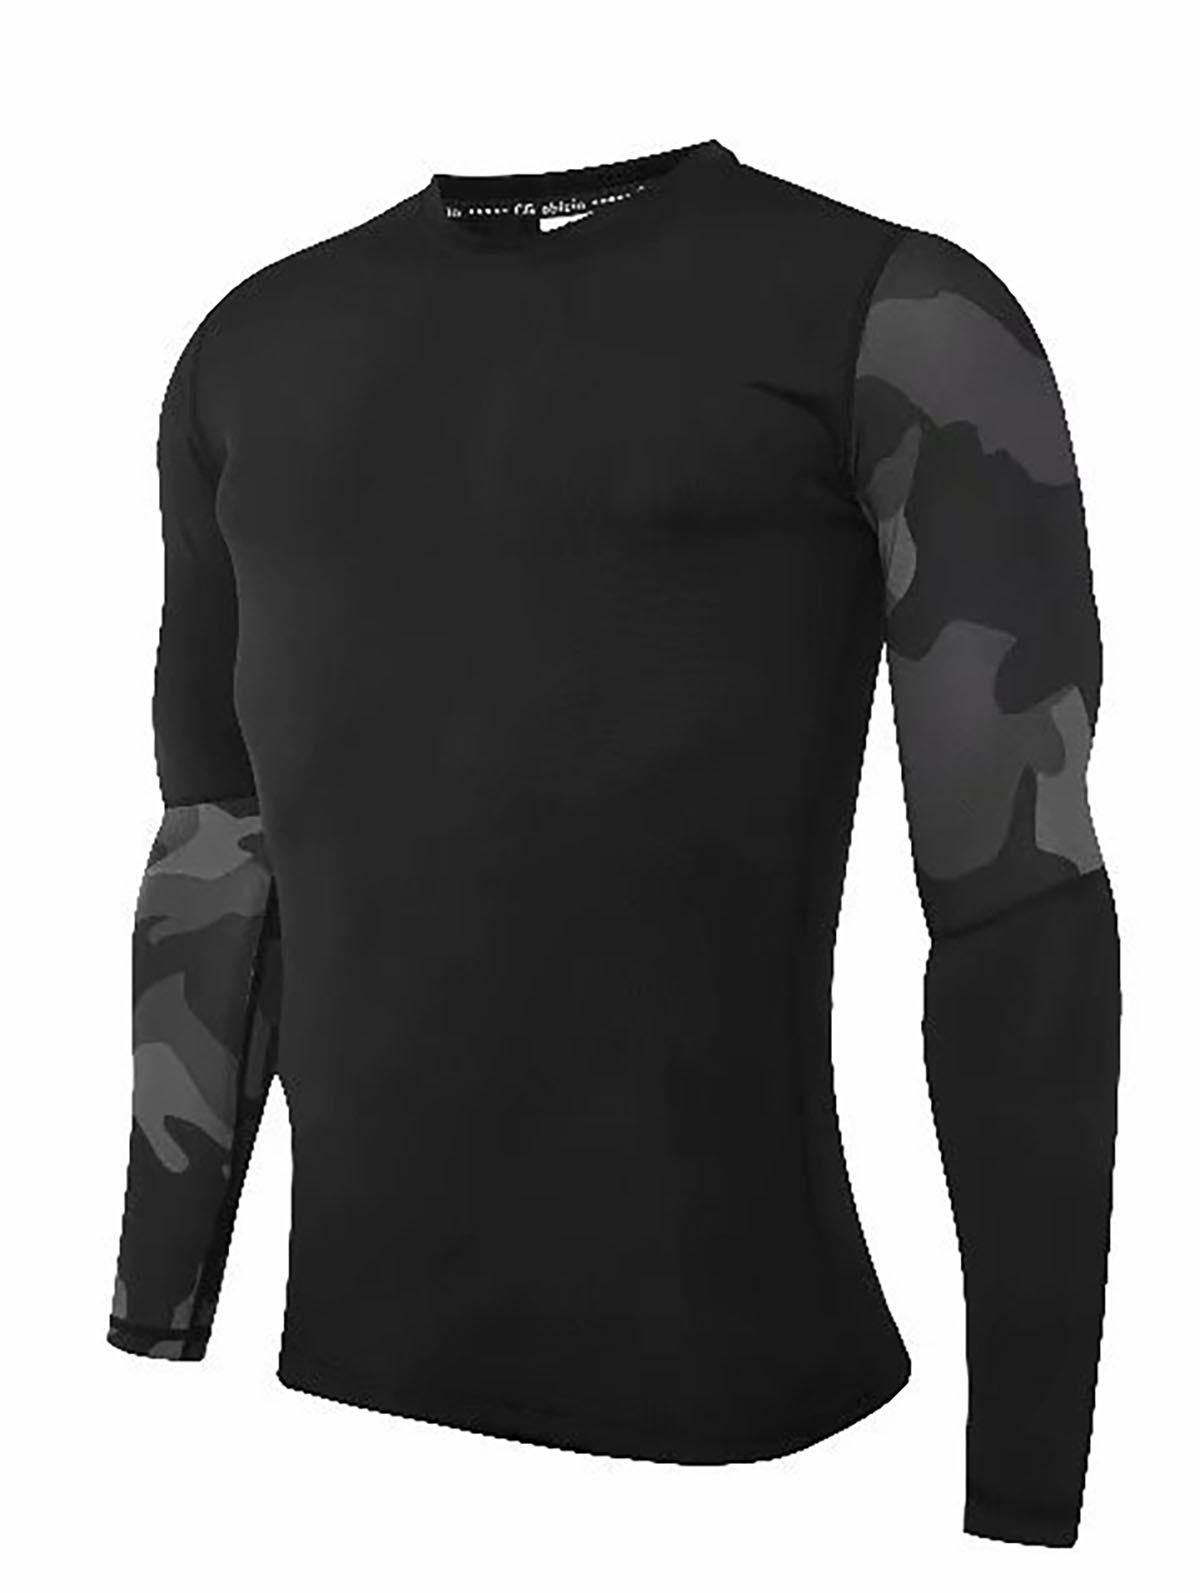 Latest Compression T-Shirt Men Tight Jersey Fitness Sport Suit Gym Blouse Running Shirt Black Bodybuilding Sportswear Lshen508